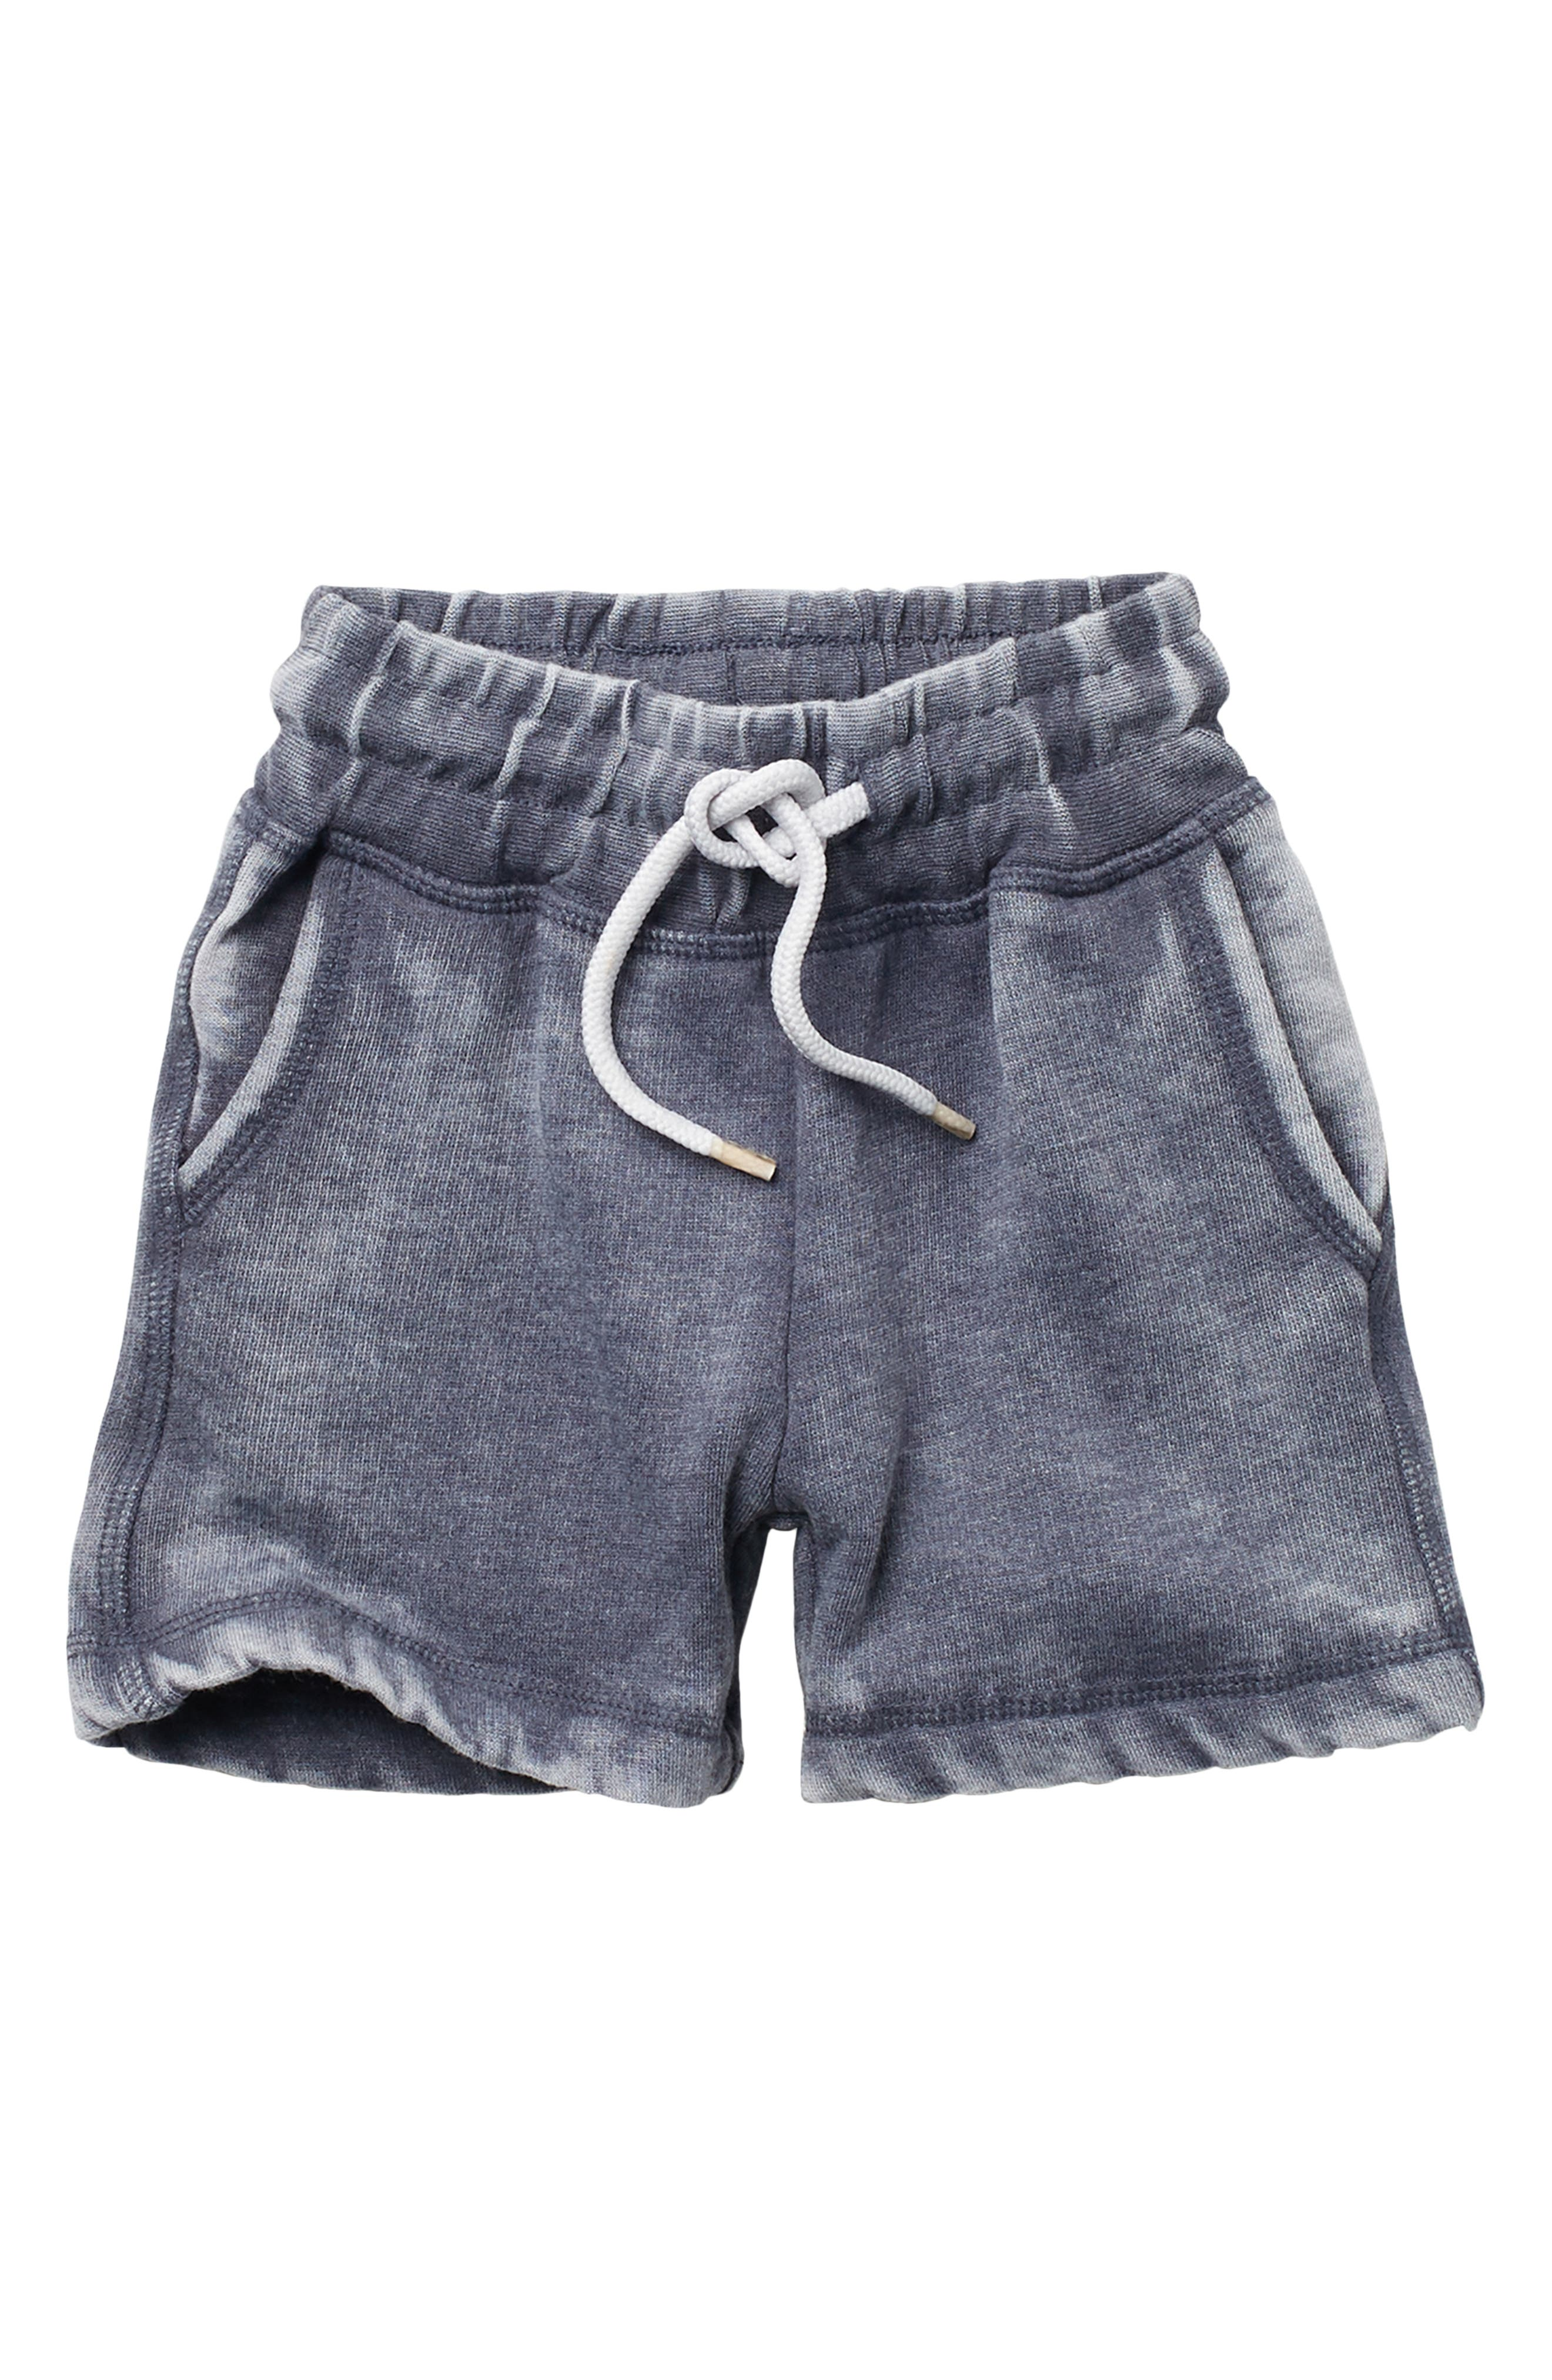 Image of Sovereign Code Cosmo Shorts